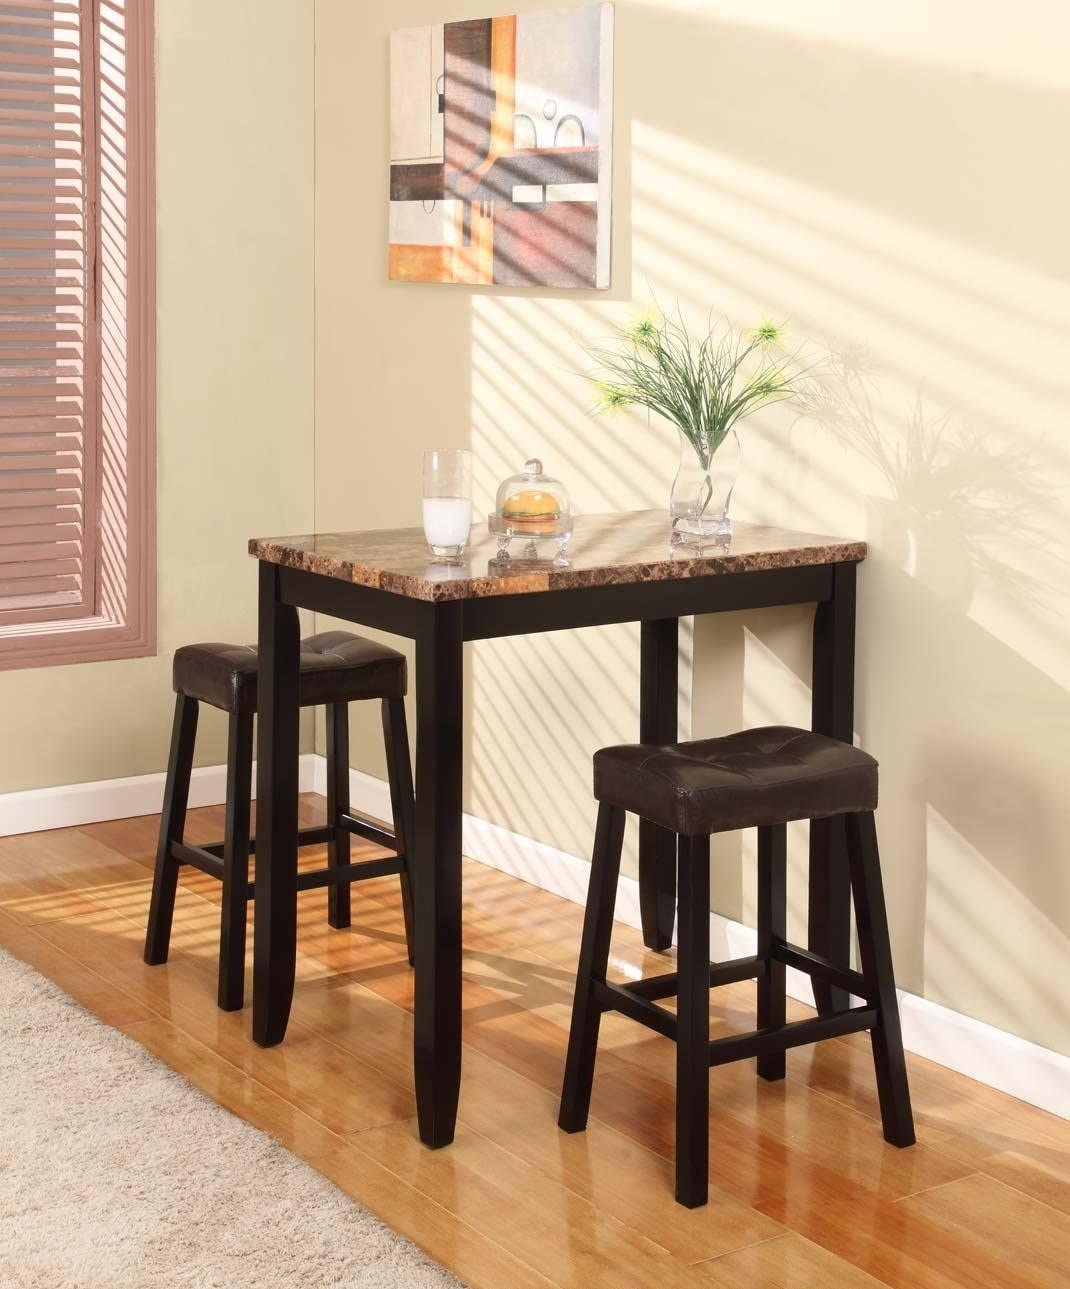 3 Piece Counter Height Pub Table Set : pub bar table set - pezcame.com